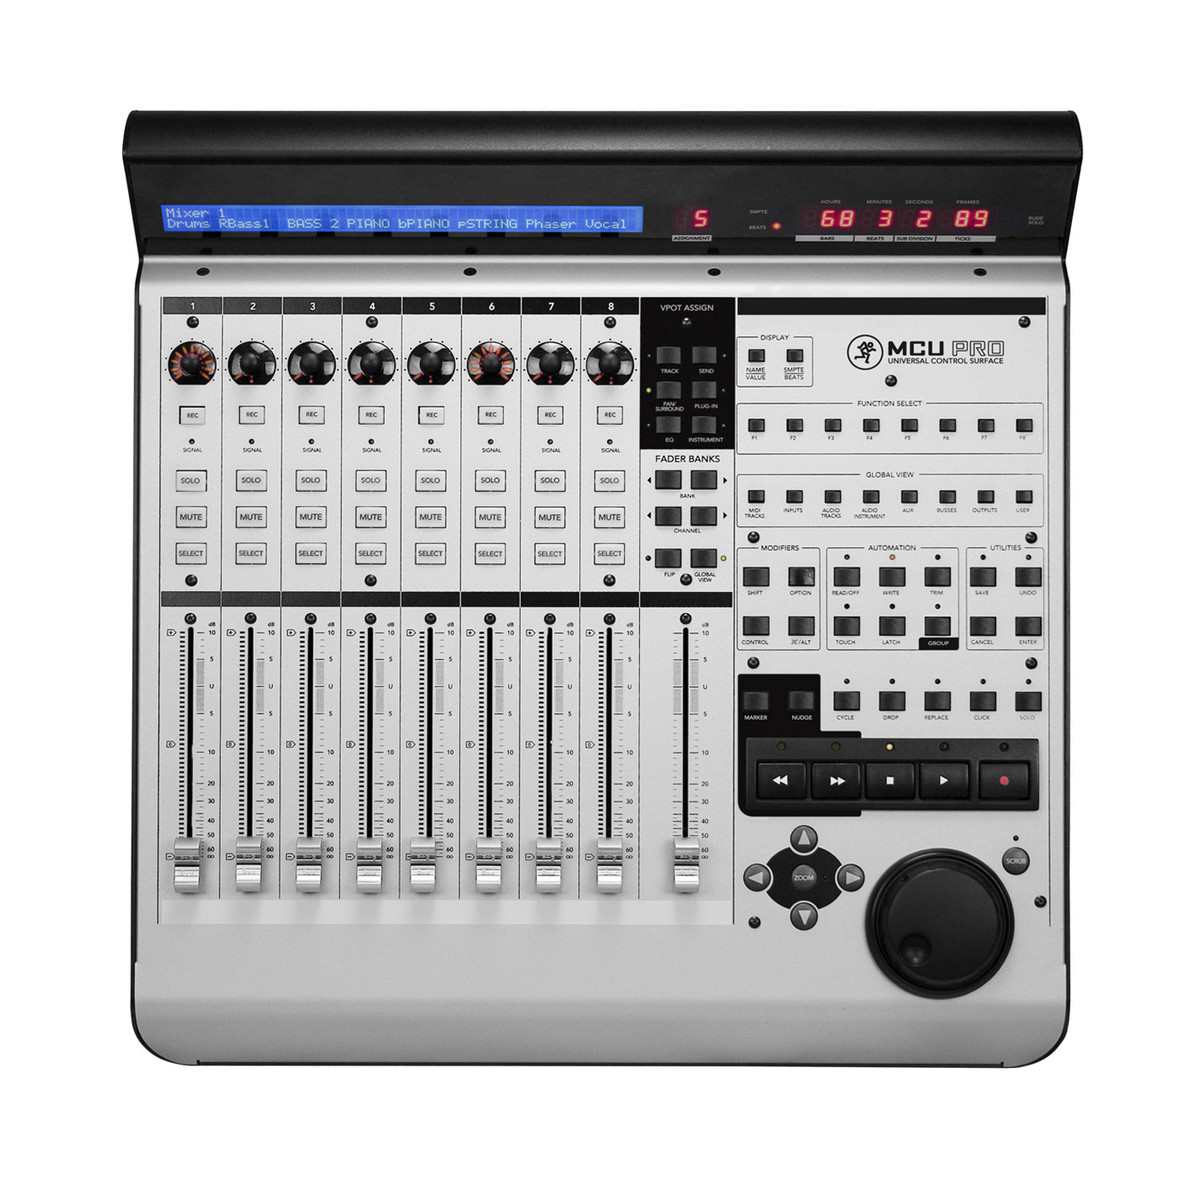 Mackie Mcu Pro 8 Channel Control Surface With Usb Box